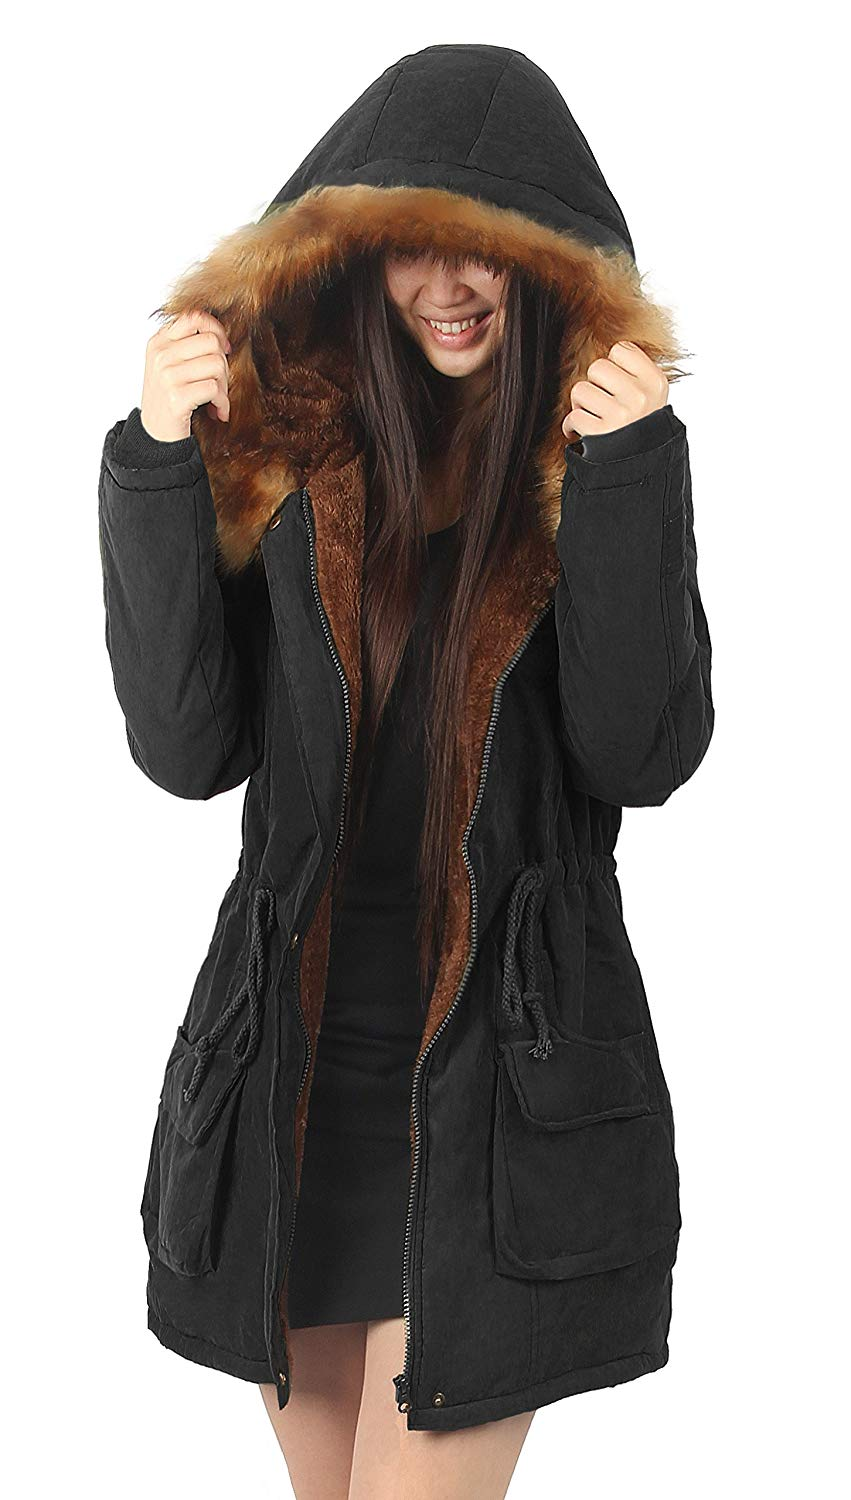 womens parka coats with fur hood amazon.com: ilovesia womens hooded warm coats parkas with faux fur jackets:  clothing EJPHPRY